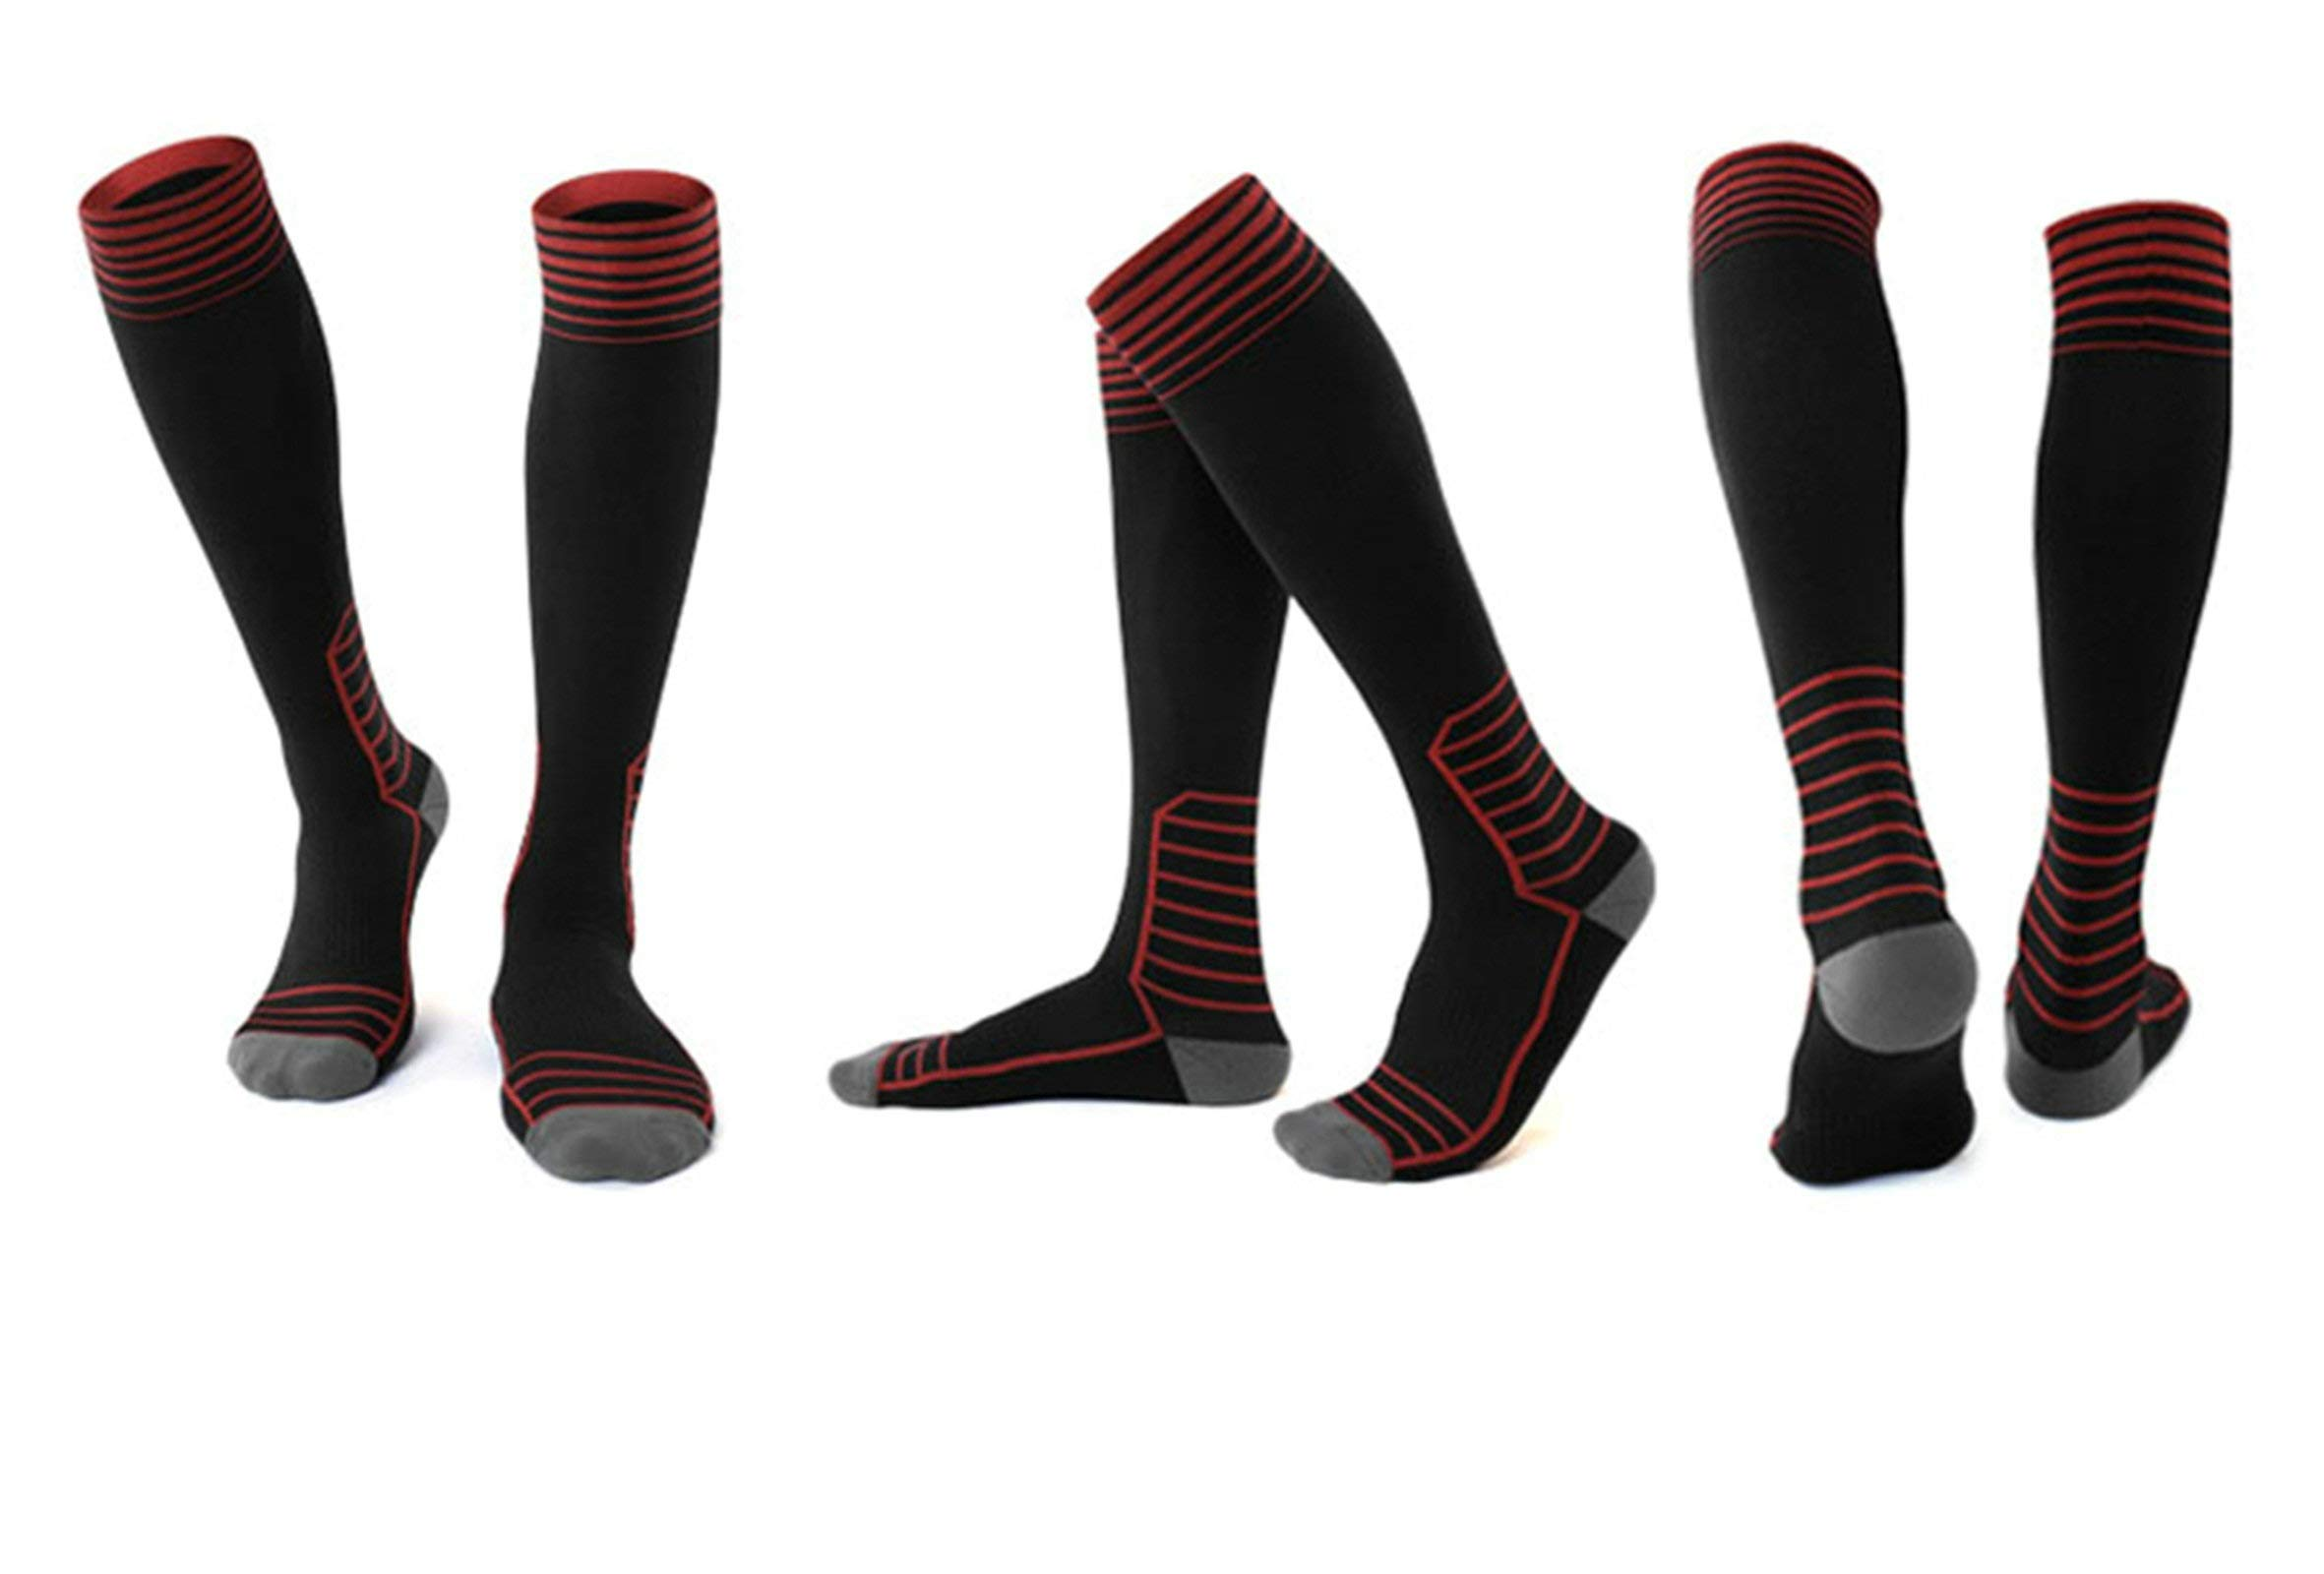 Leggings Riding Socks Long Tube Compression Socks Long Tube Running Socks L Code 39-43 Black Five Pairs